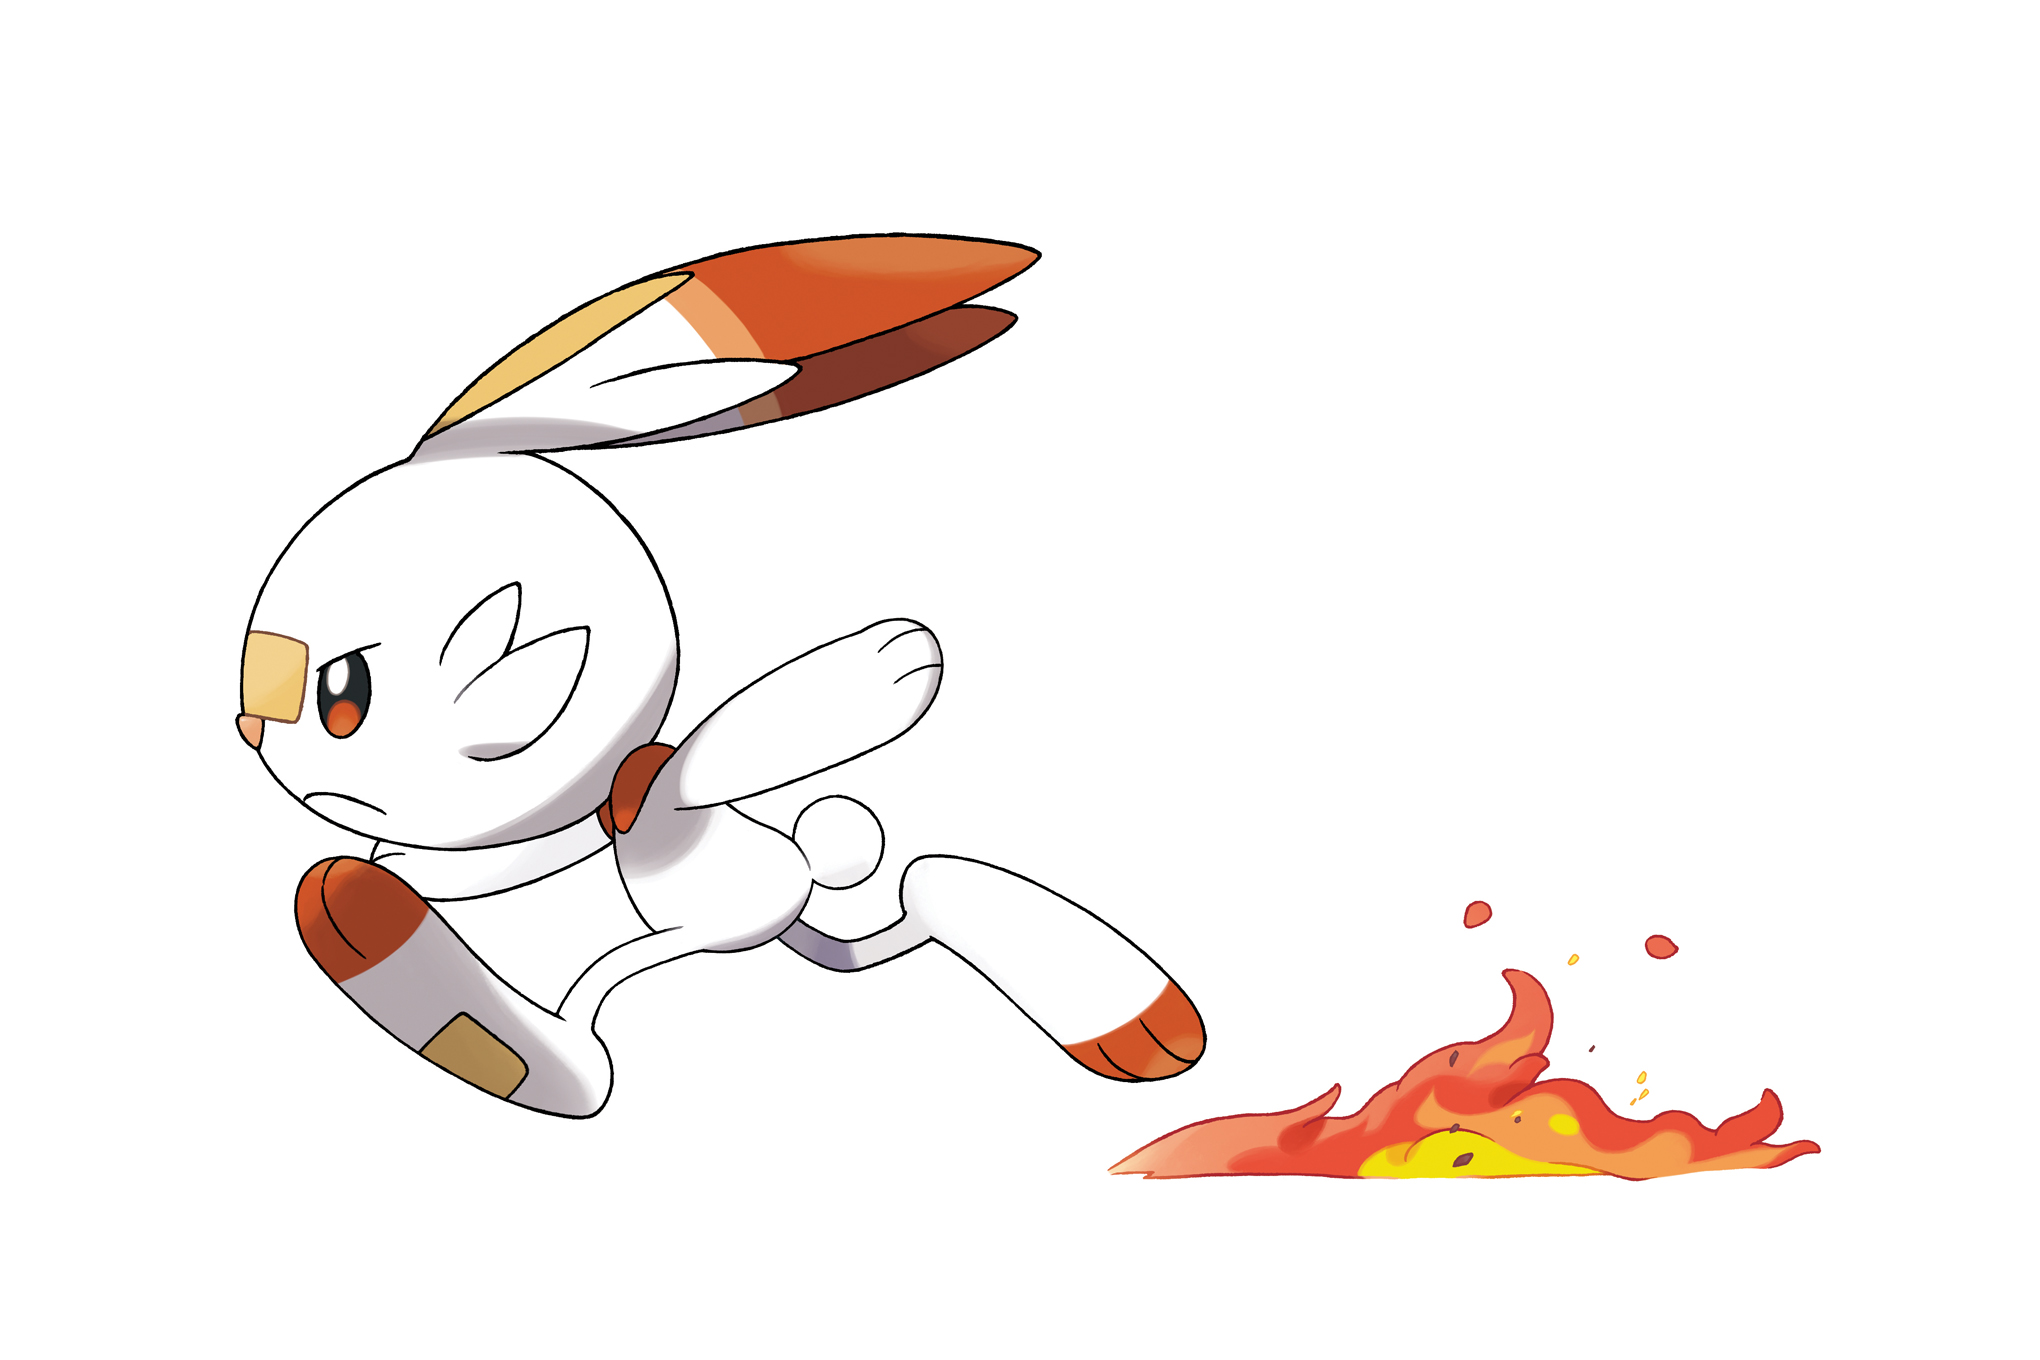 Pokémon Sword and Shield Scorbunny guide: Evolutions and best moves